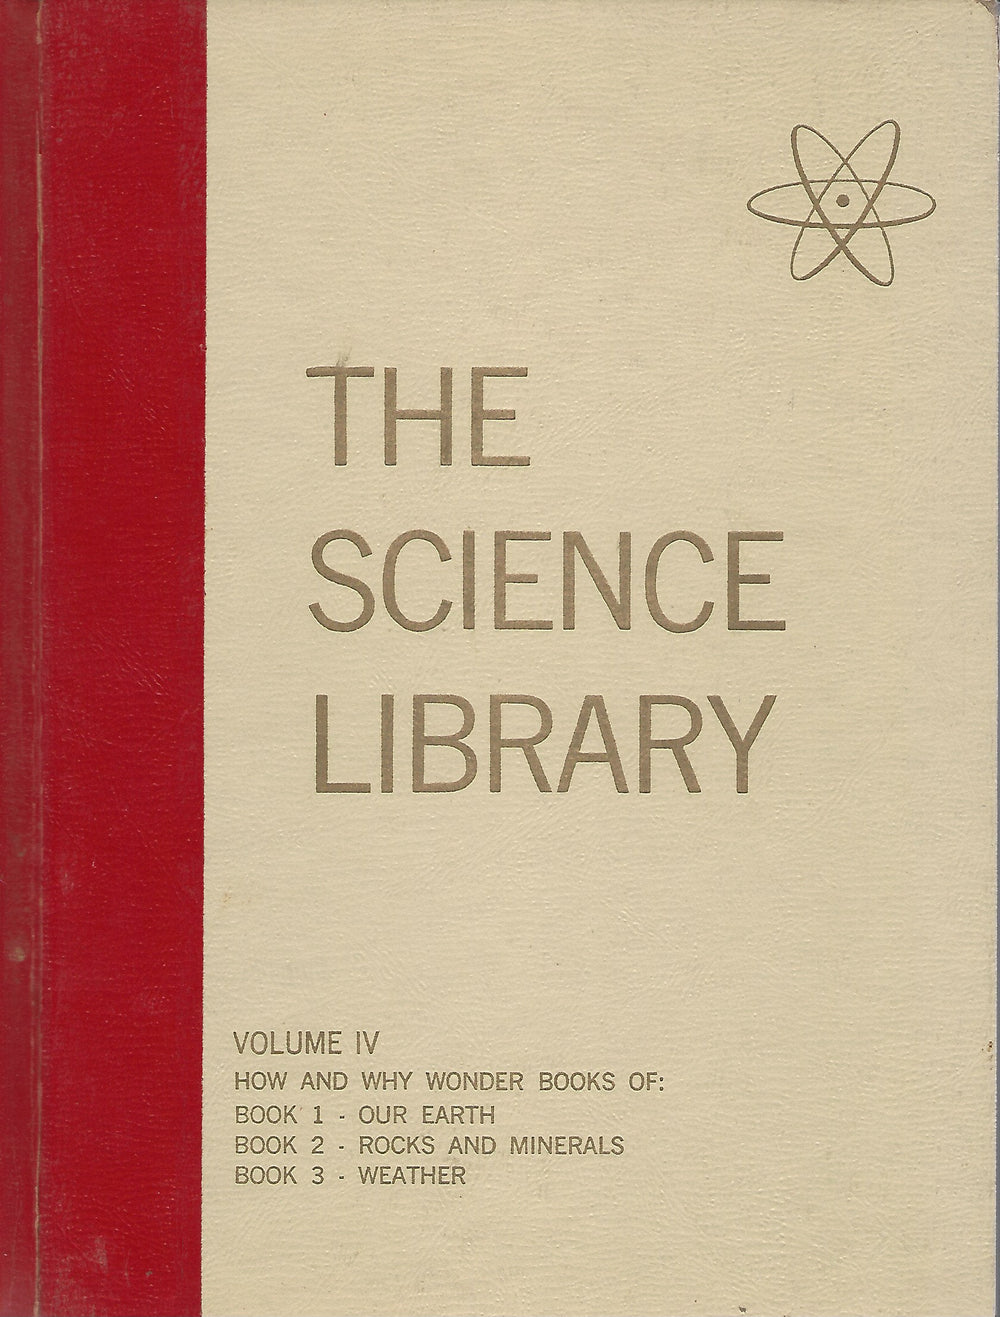 Science Library; Volume IV  The How and Why Wonder Books  Written by Felix Sutton  (1960)